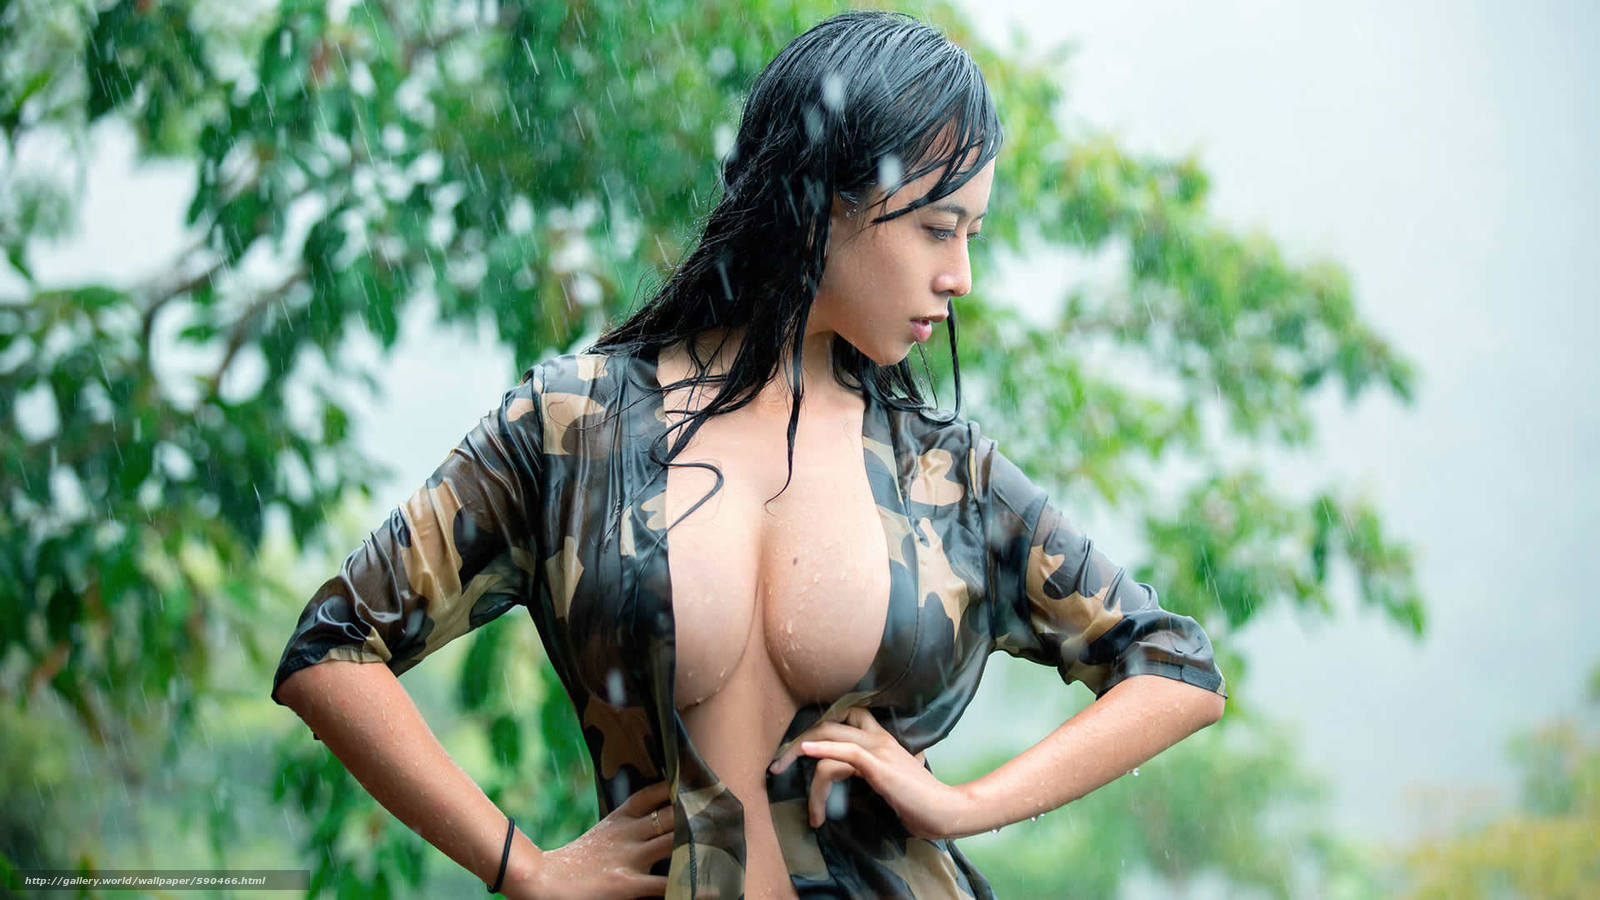 Free download naked boobs army girl wallpapers hentai films